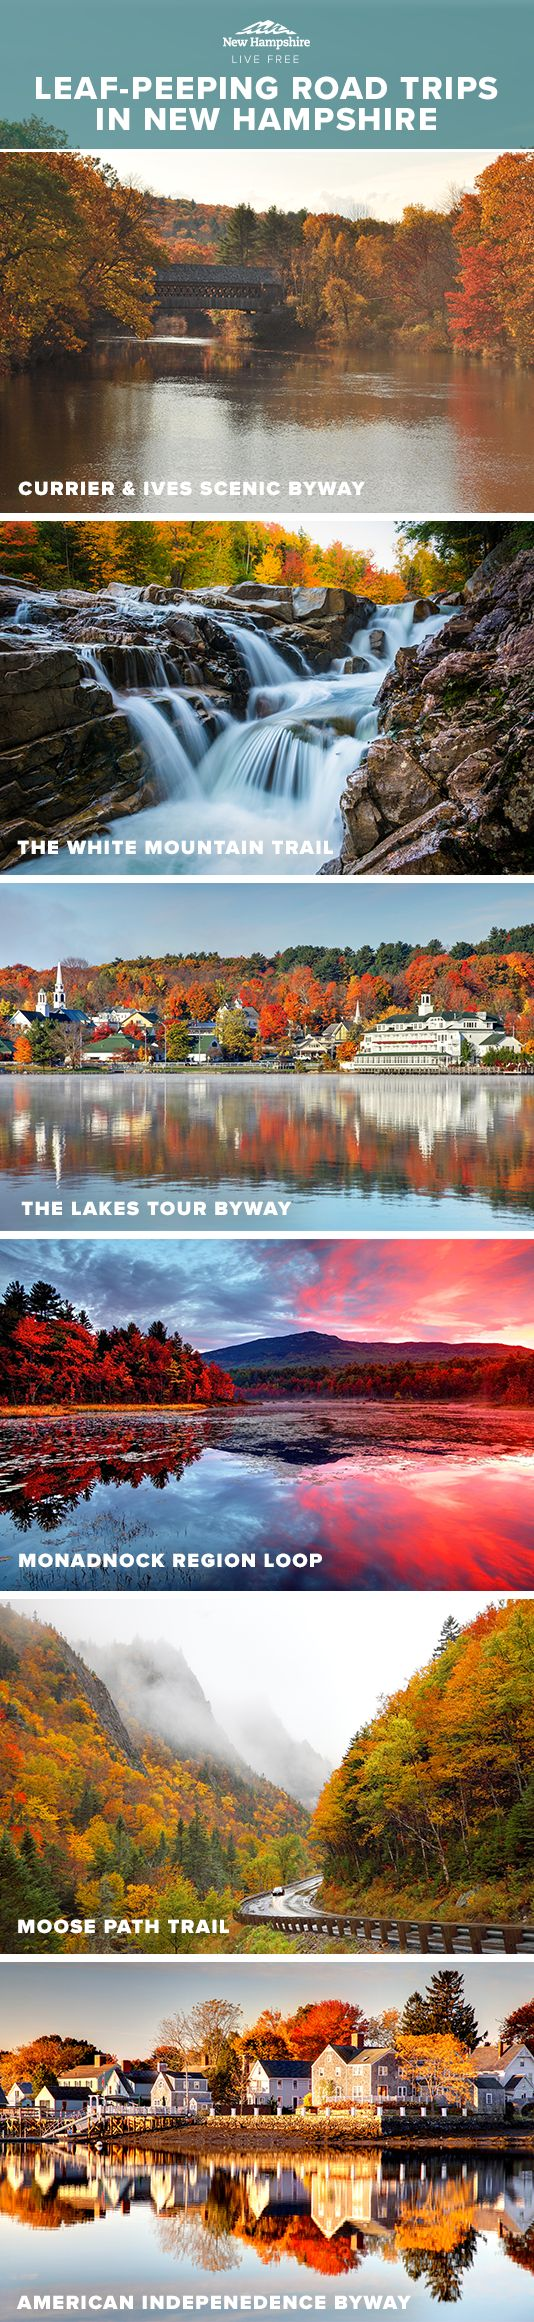 The best way to see the beauty that is New Hampshire fall foliage is to get in the car and take an unforgettable road trip. These scenic drives will take you across the state, where you can stop and enjoy stunning mountain views, apple picking, outdoor activities like biking, kayaking and hiking, artisanal goodies, world-class restaurants, great locally brewed beer, tax free shopping and much more.